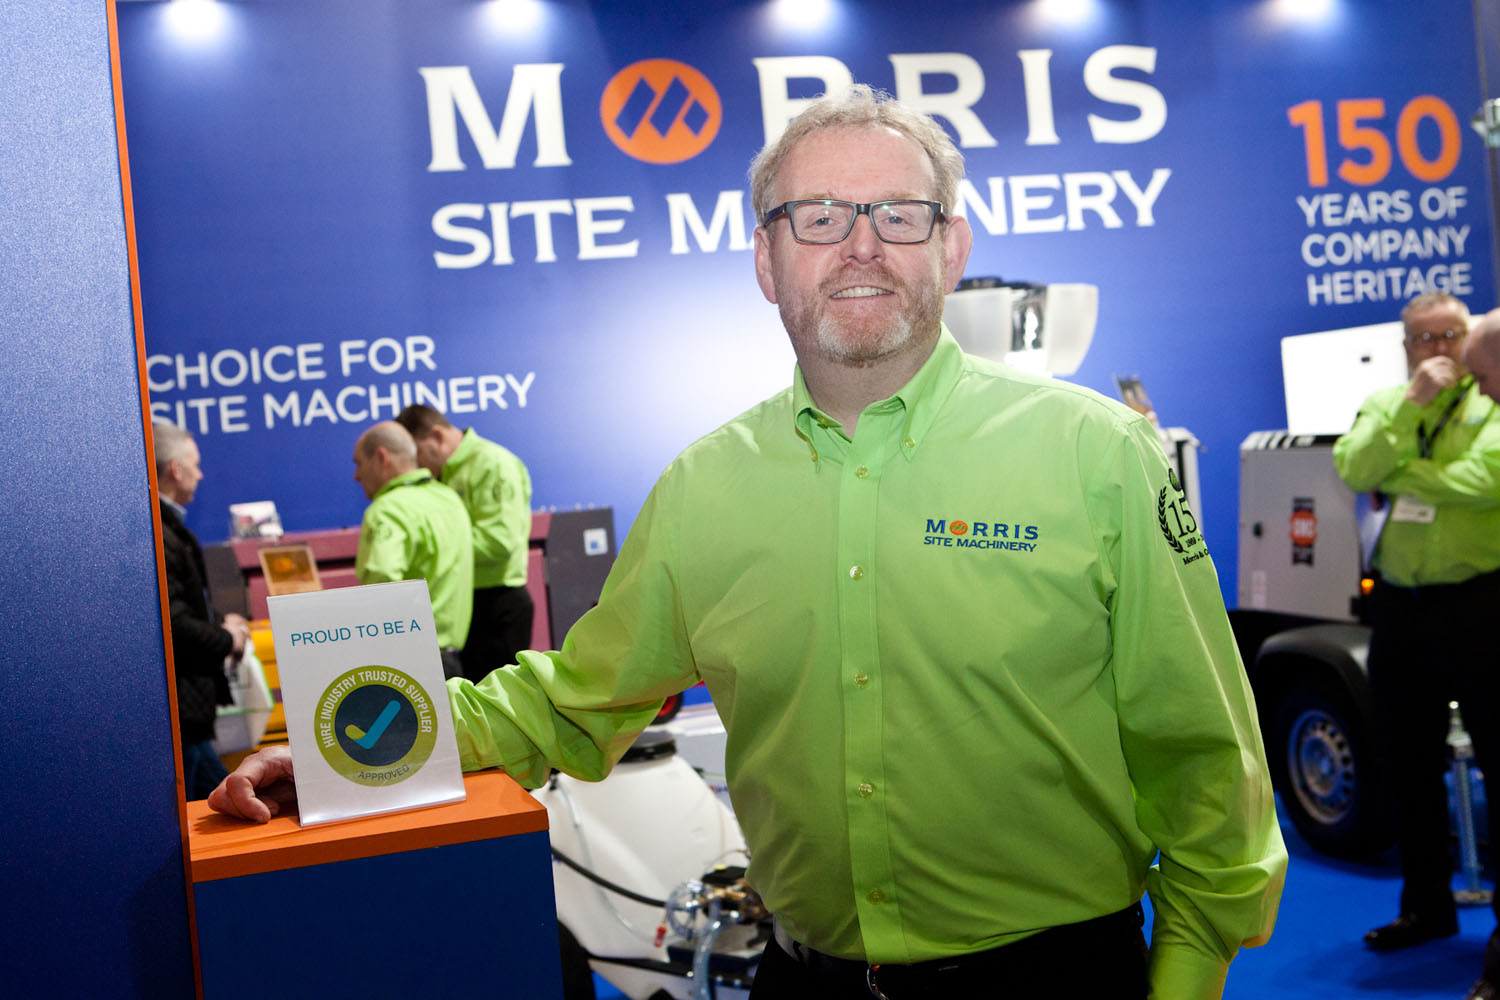 Morris_Site_Trusted_Supplier.jpg